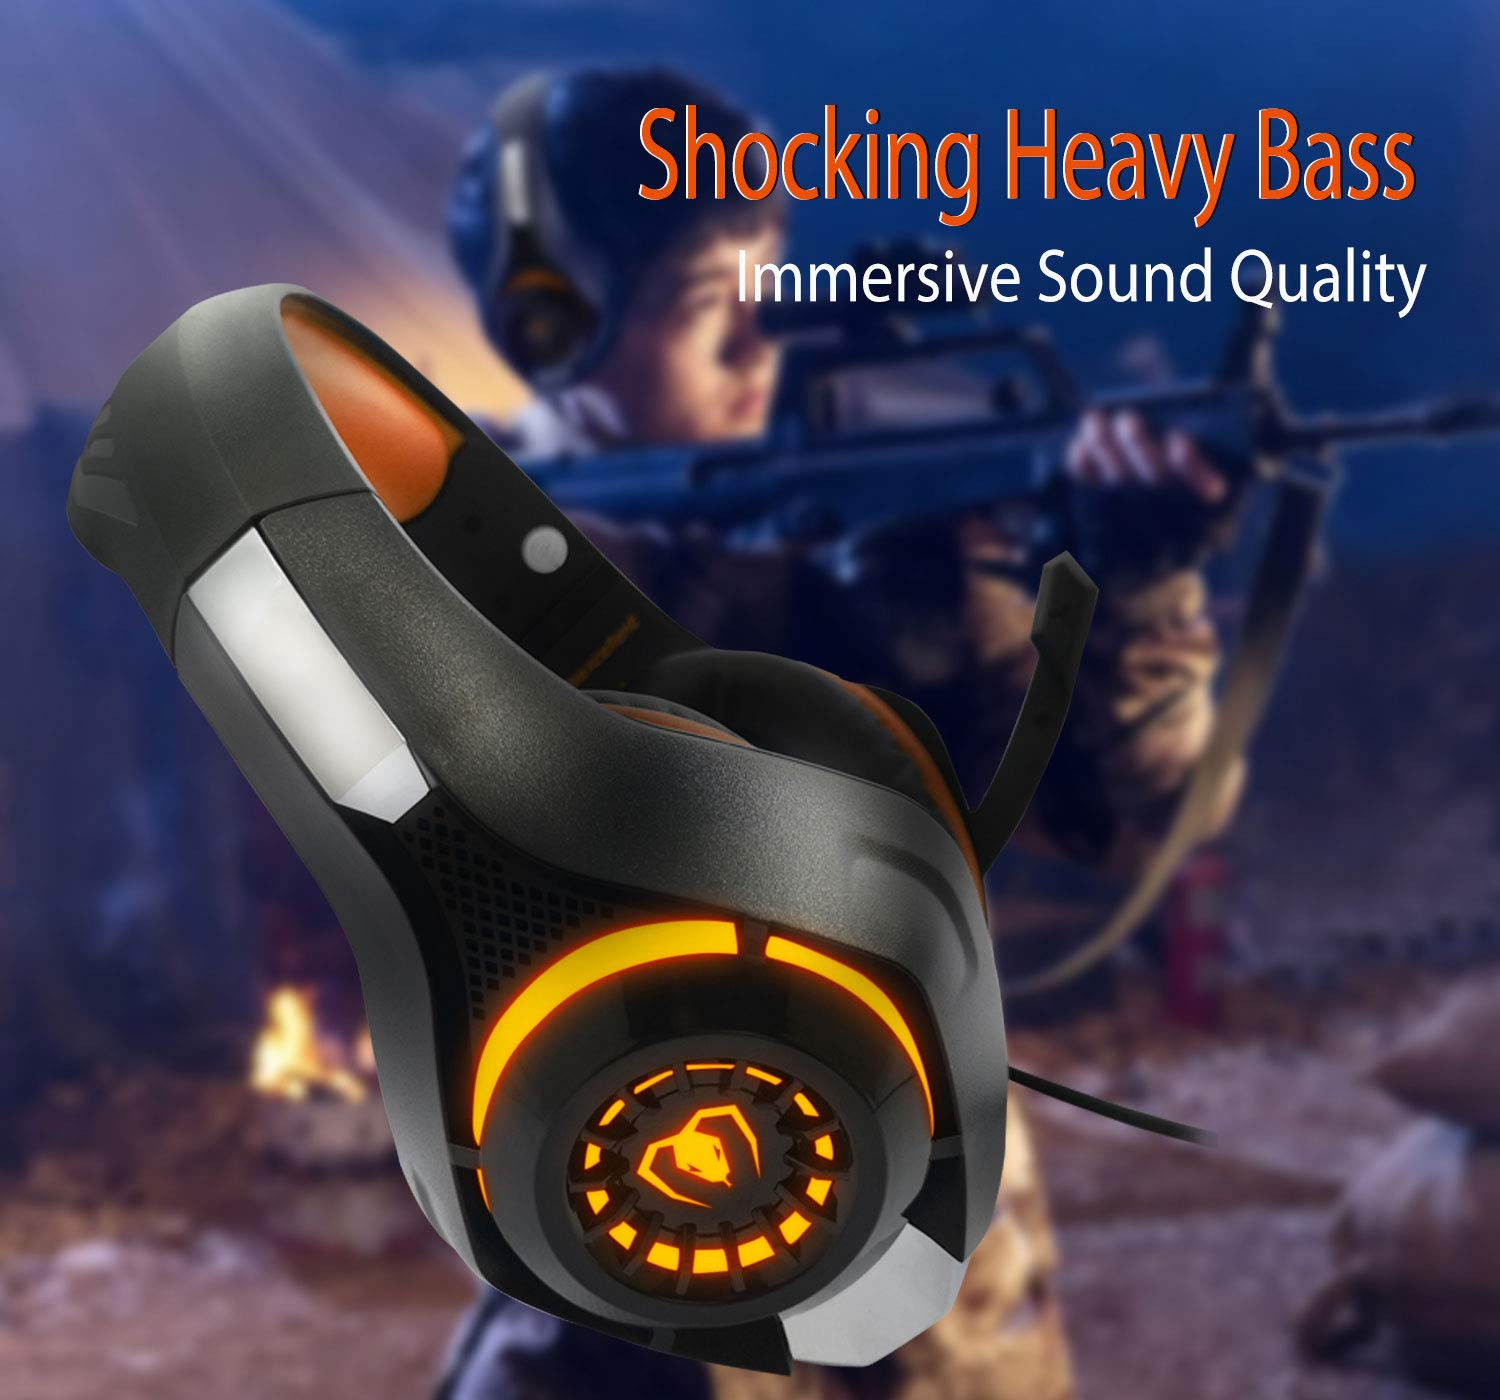 Pro Gaming Headset for PC PS4 Xbox One Surround Sound Over-Ear Headphones with Mic LED Light Bass Surround Soft Memory Earmuffs for Computer Laptop Switch Games Kid s Boy s Teen s Gifts